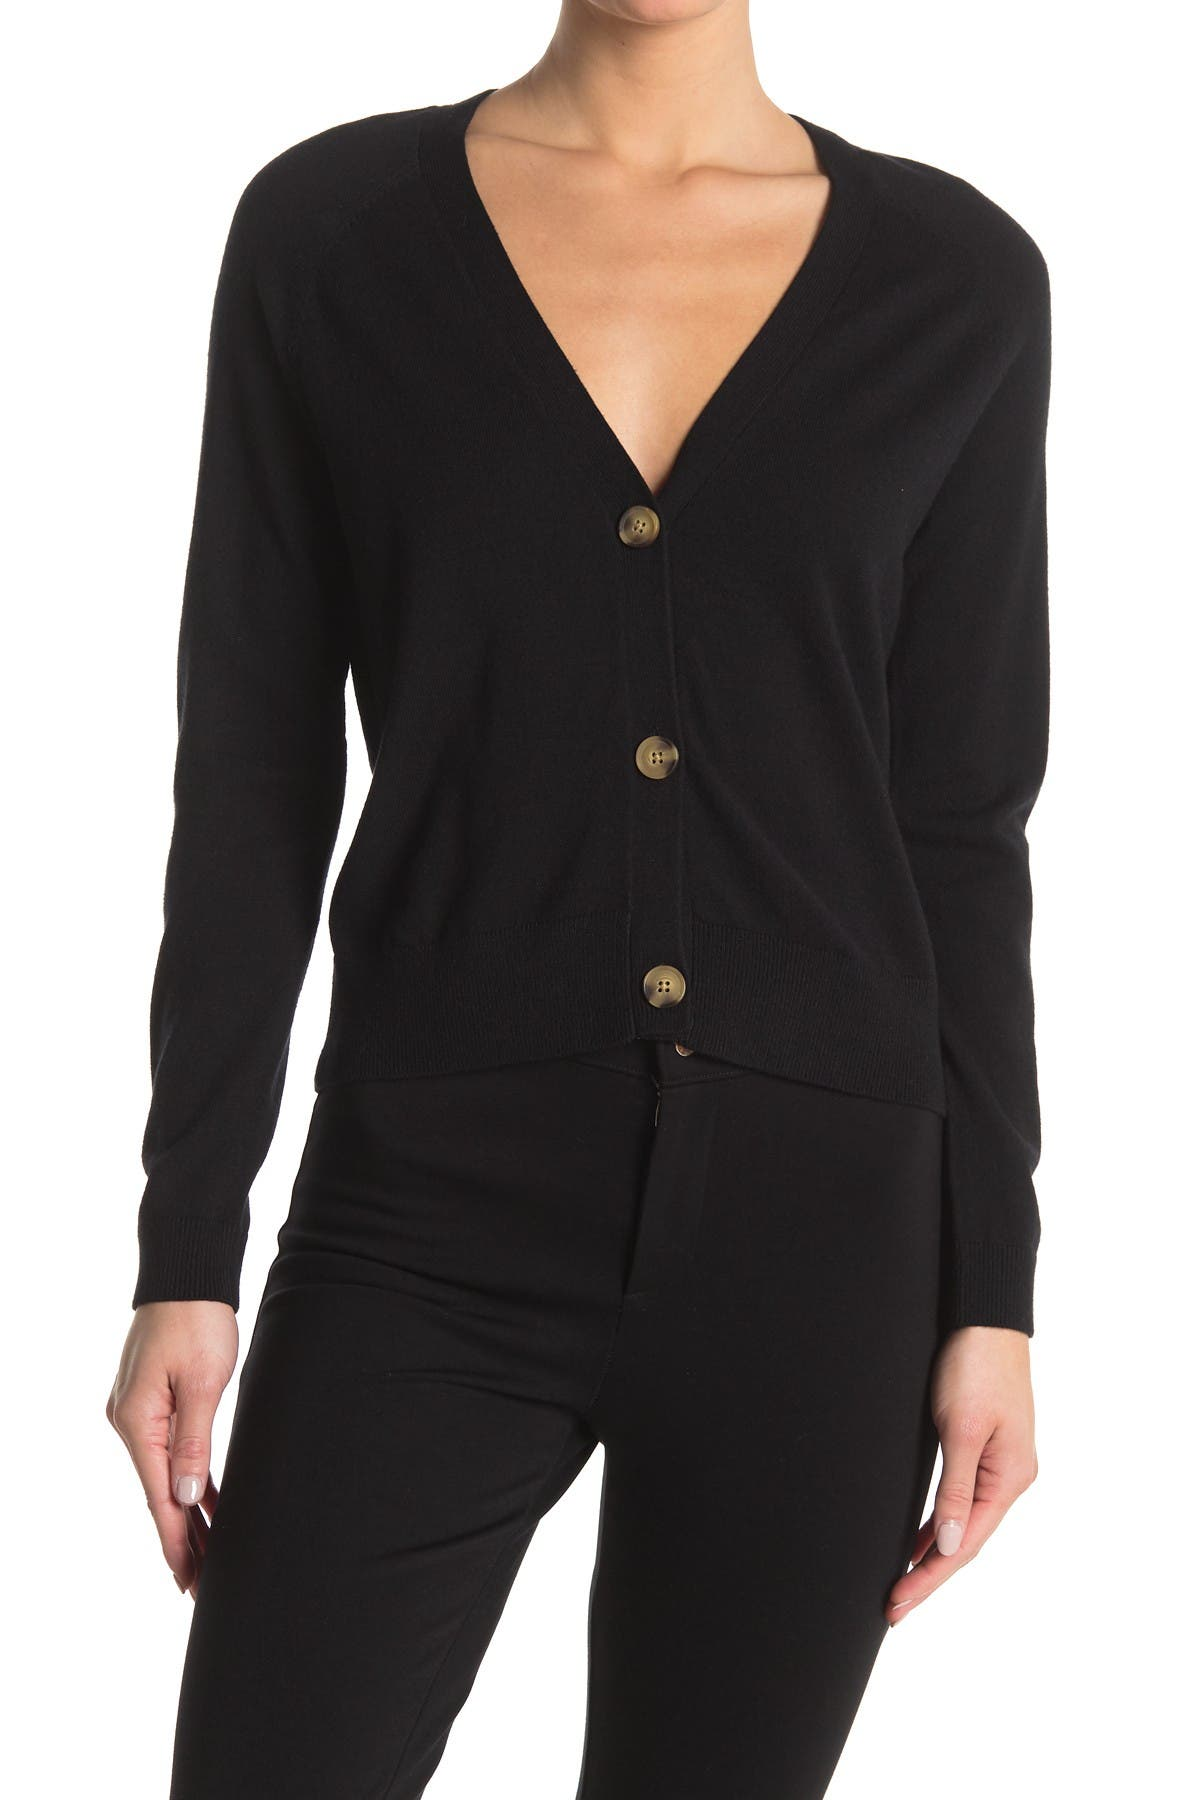 Image of philosophy V-Neck Button Front Knit Cardigan